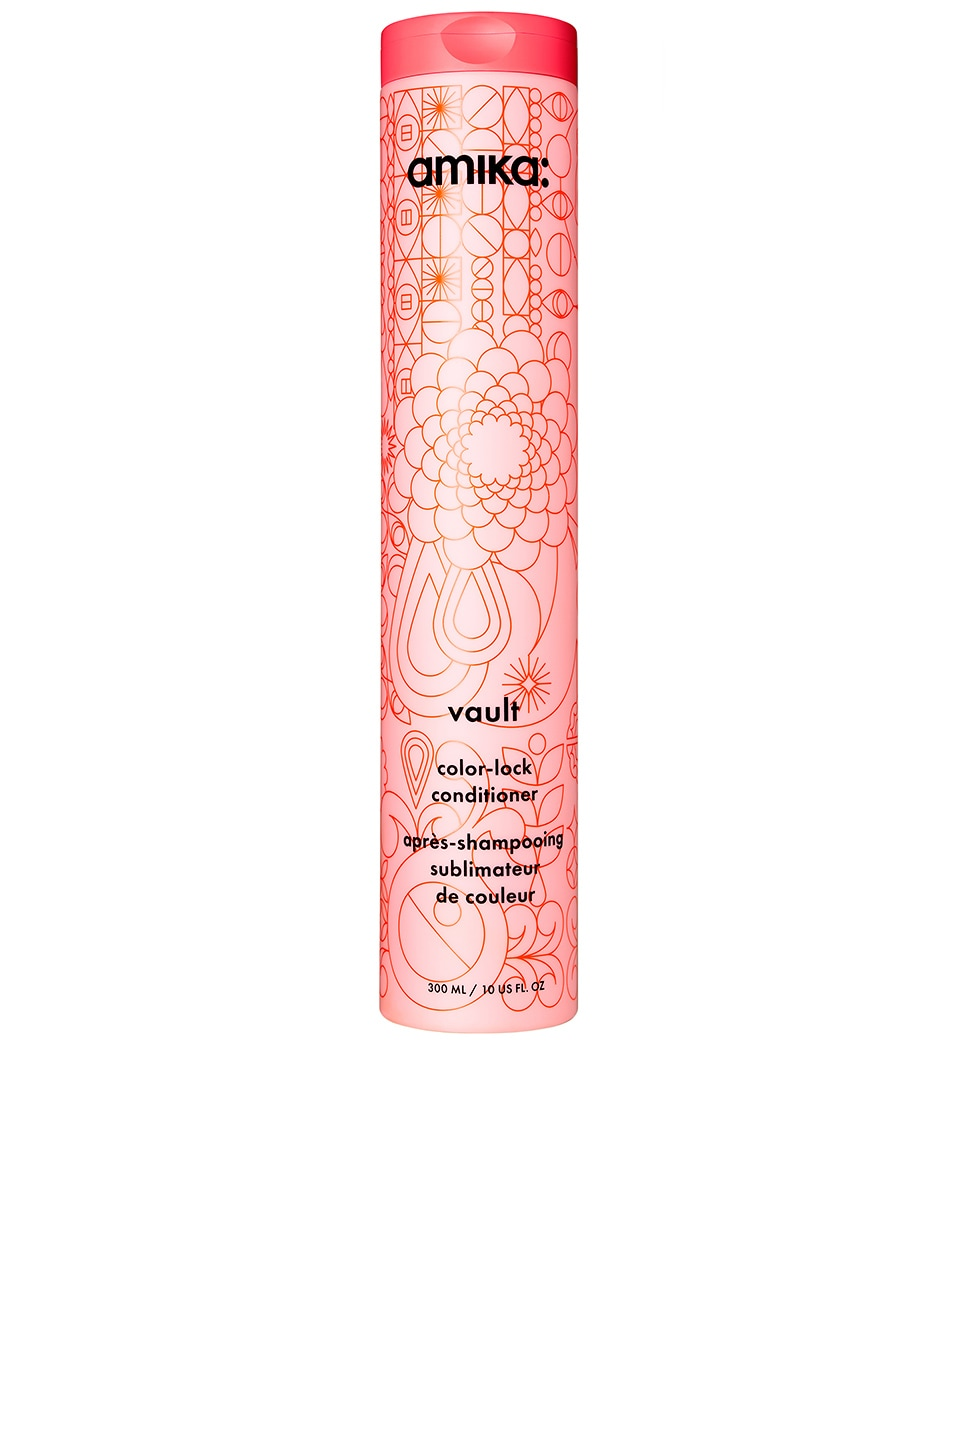 amika Vault Color-Lock Conditioner